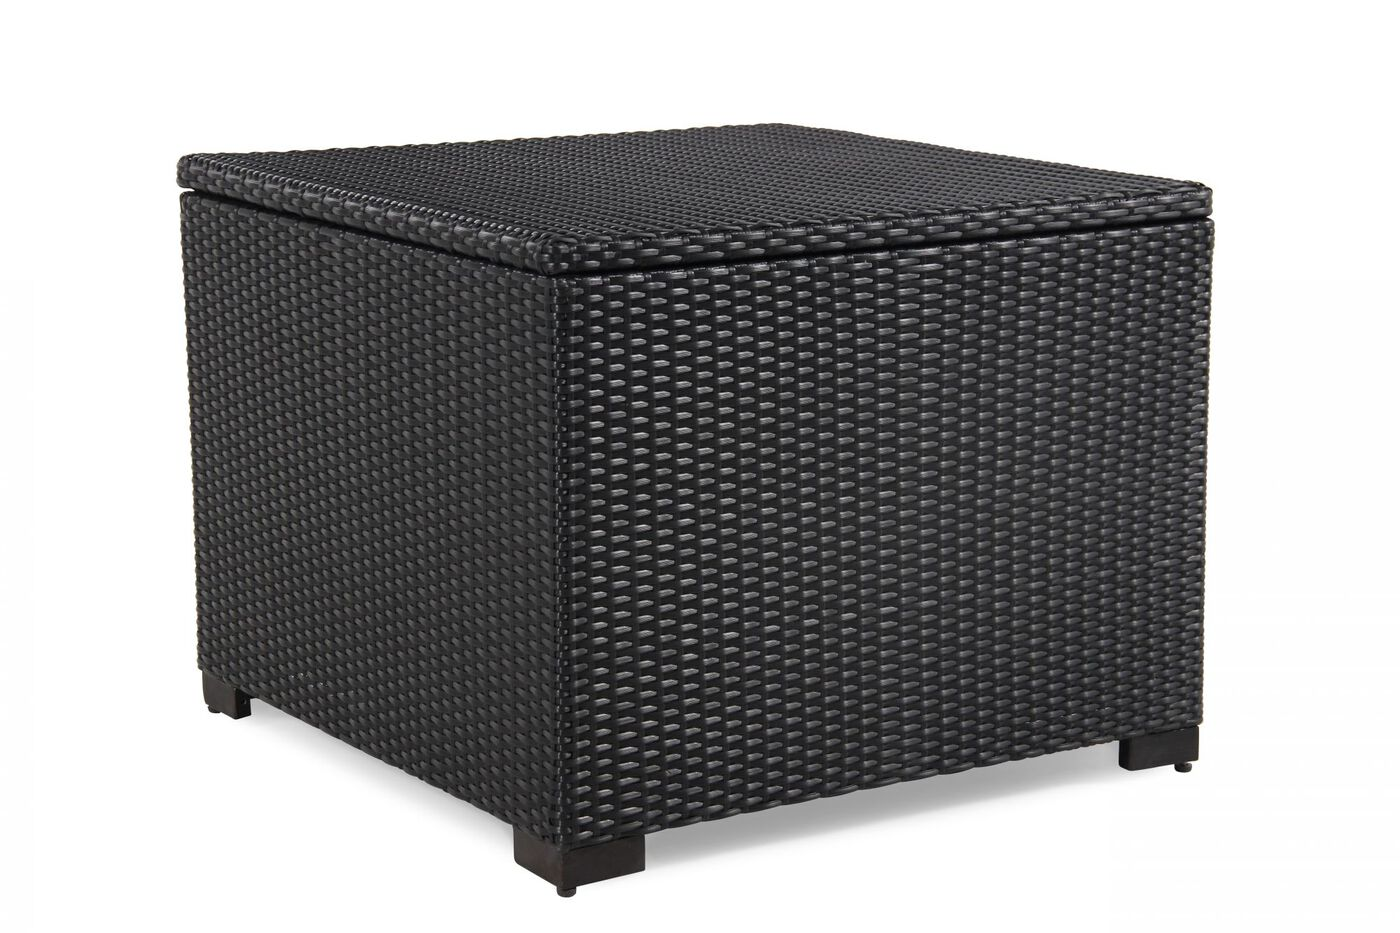 Mathis Brothers Patio Furniture patio storage boxworld source | mathis brothers